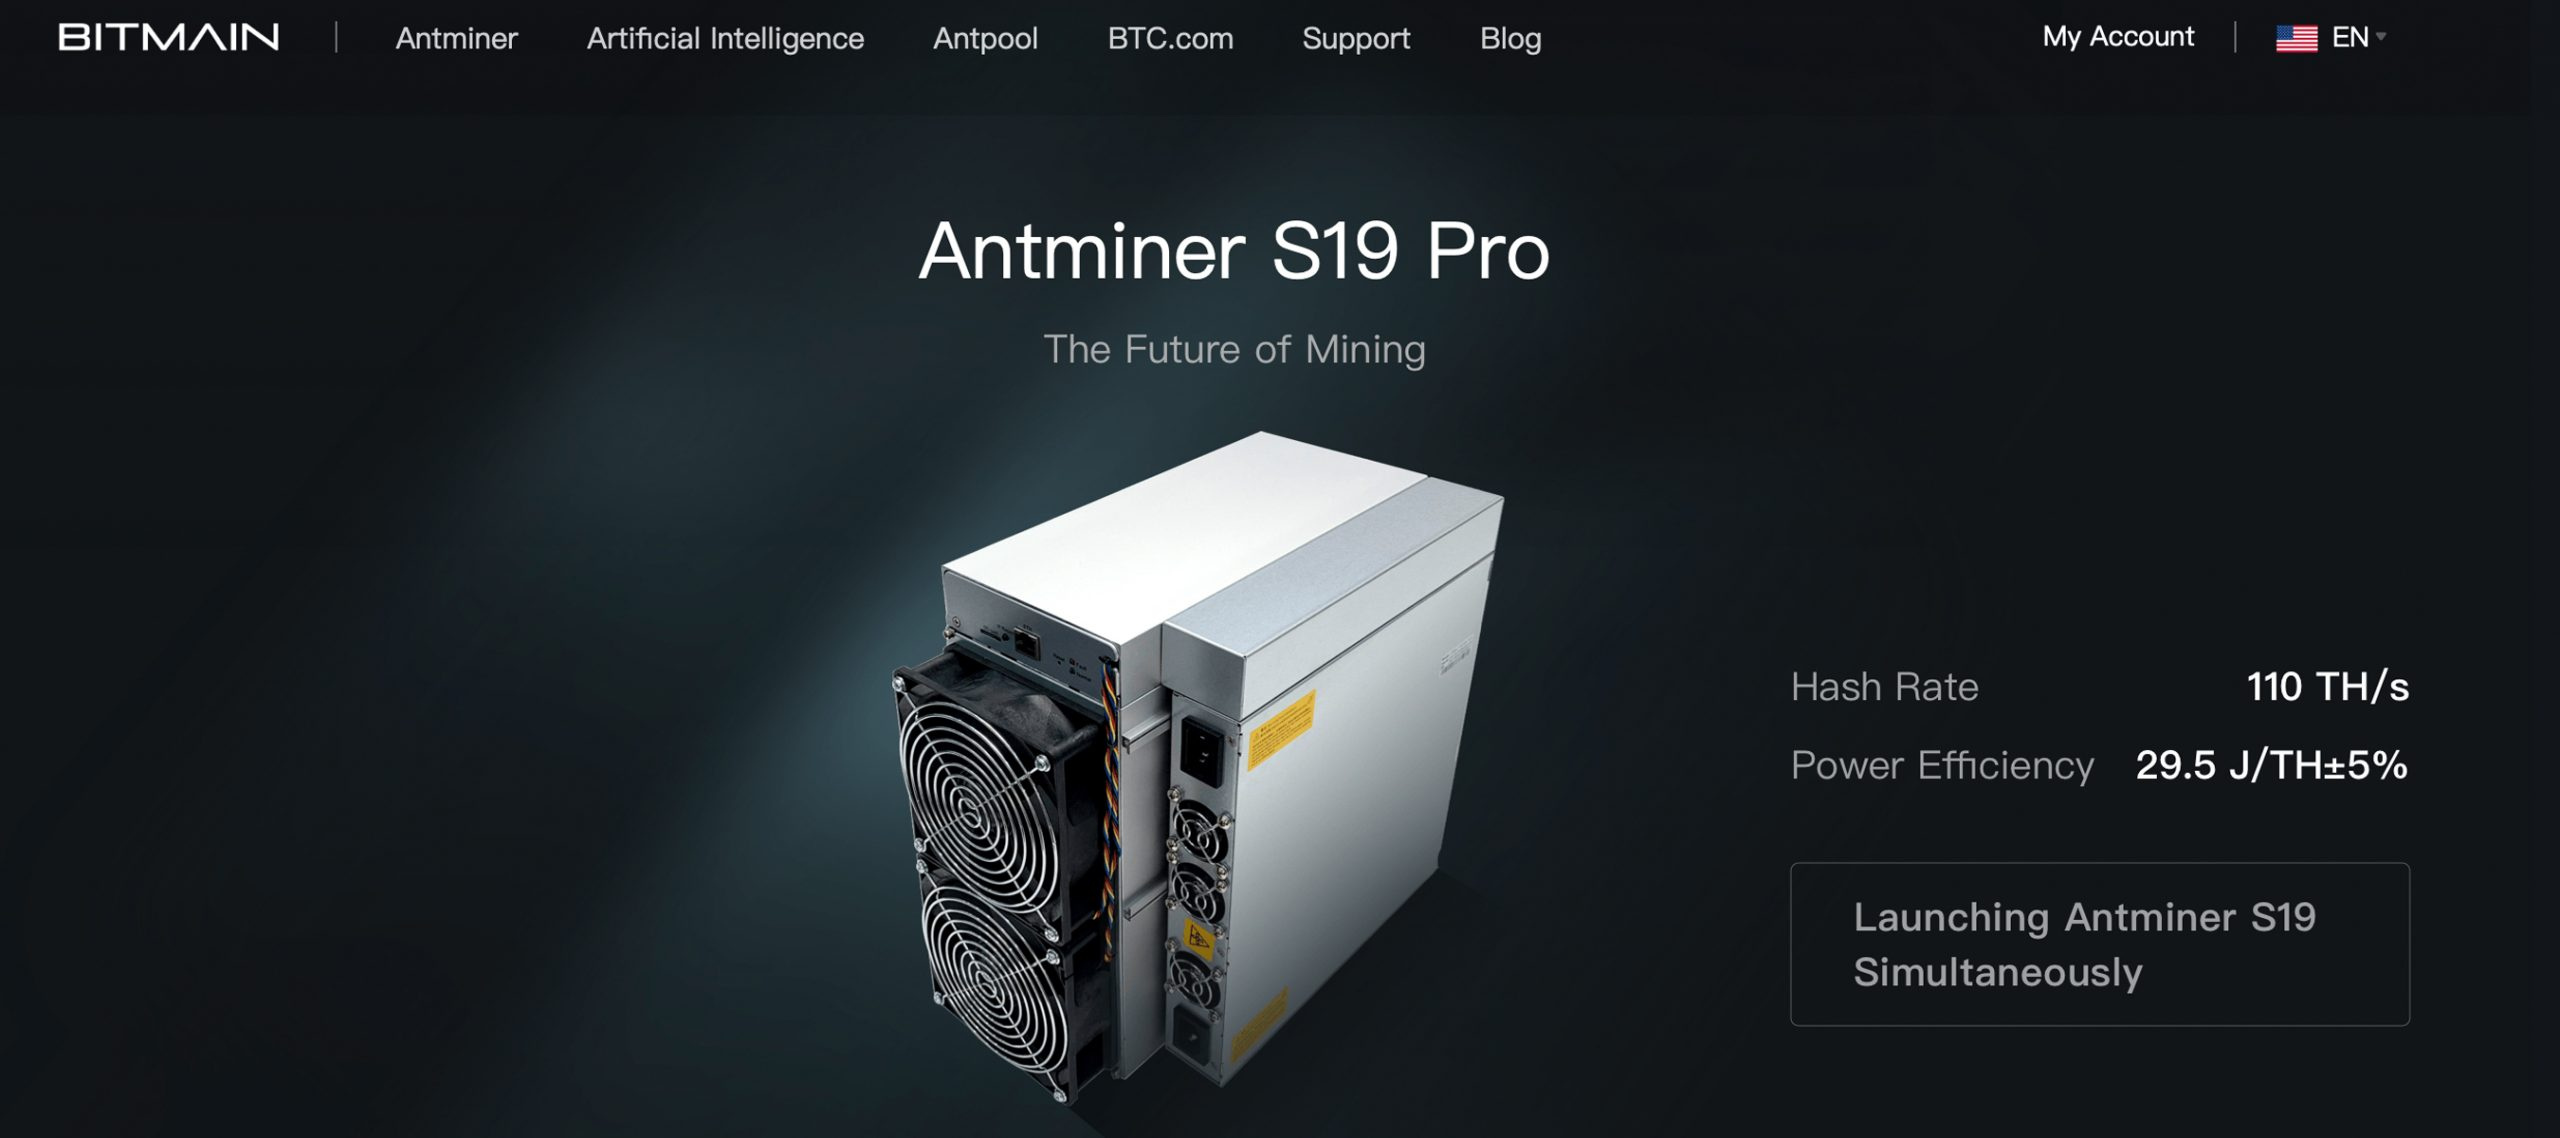 Bitmain Unveils 2 Bitcoin Miners With Max Speeds Up to 110TH/s Per Unit